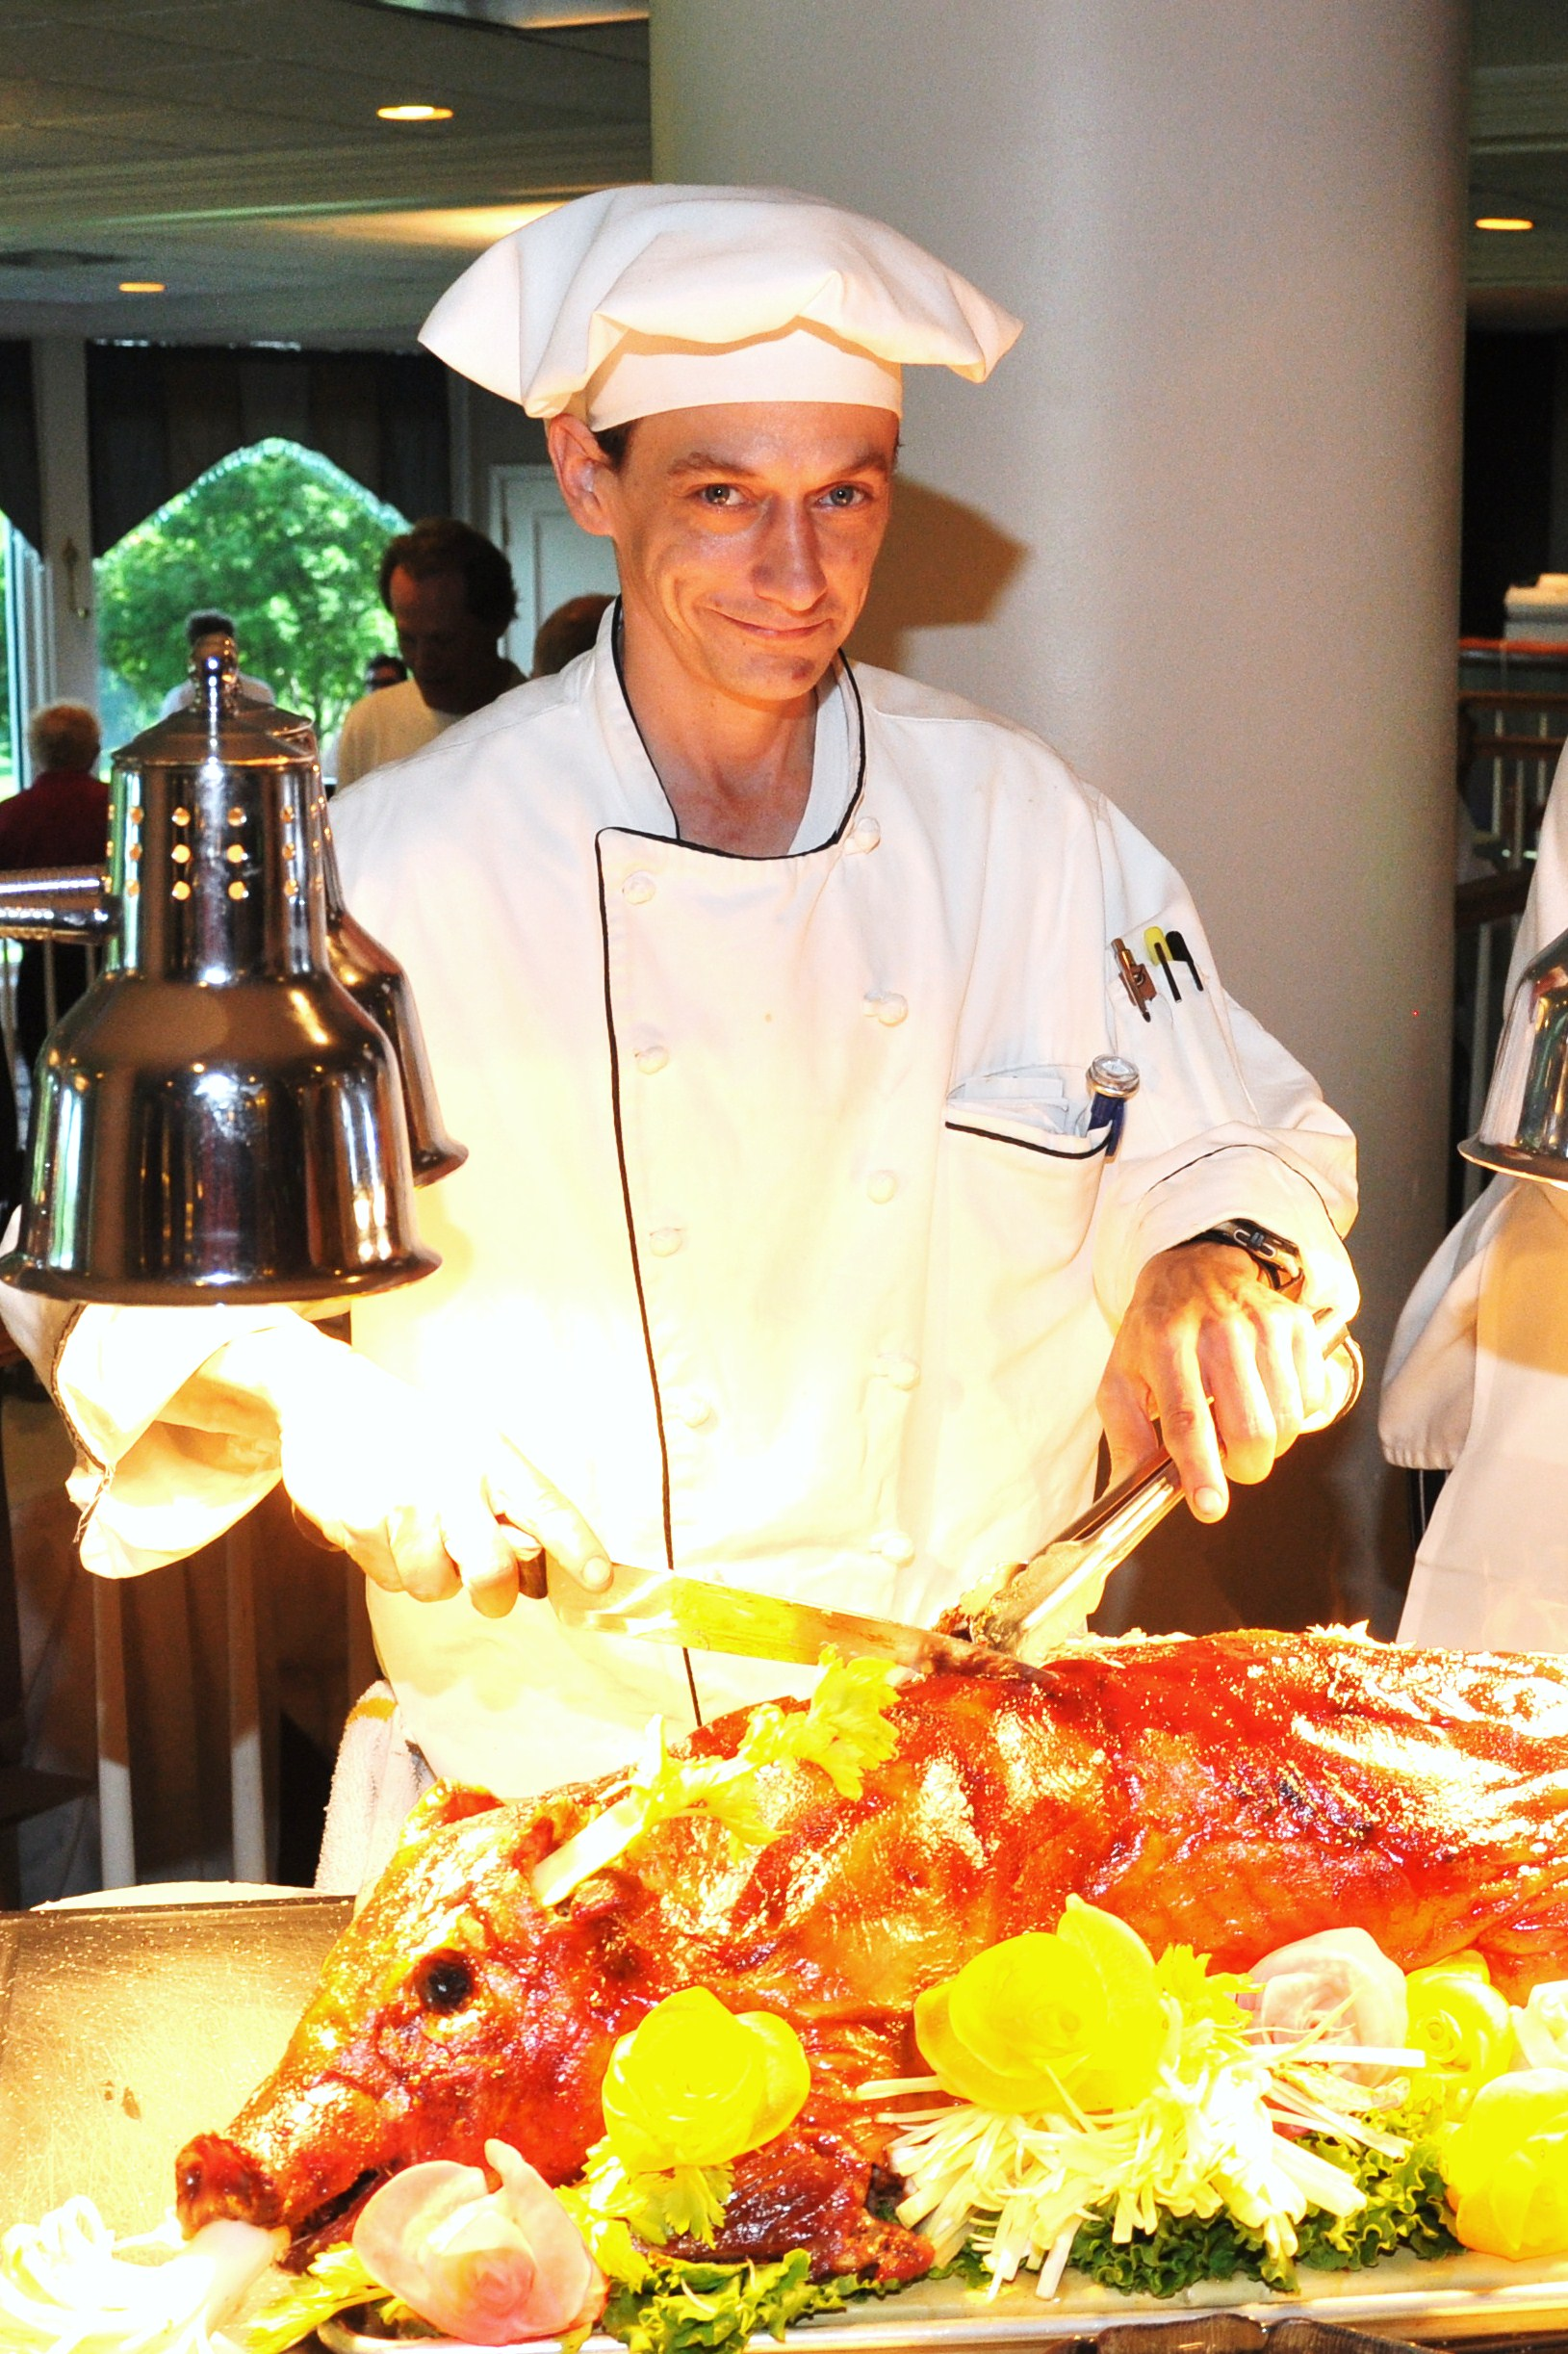 Chef Roasted Pig